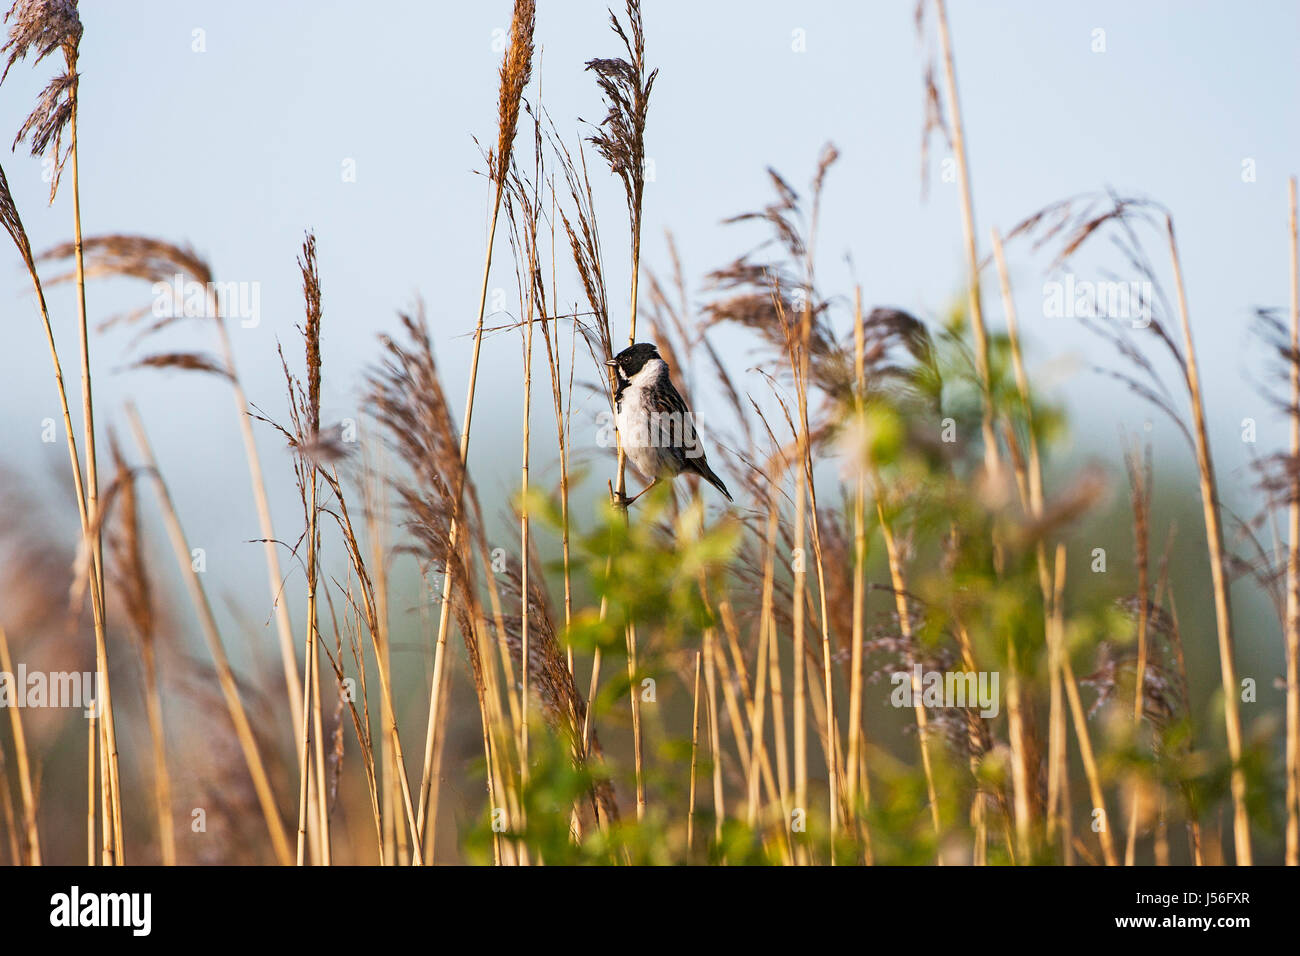 Common reed bunting Emberiza schoeniclus perched in Common reed Phragmites australis beside the River Avon Hampshire - Stock Image